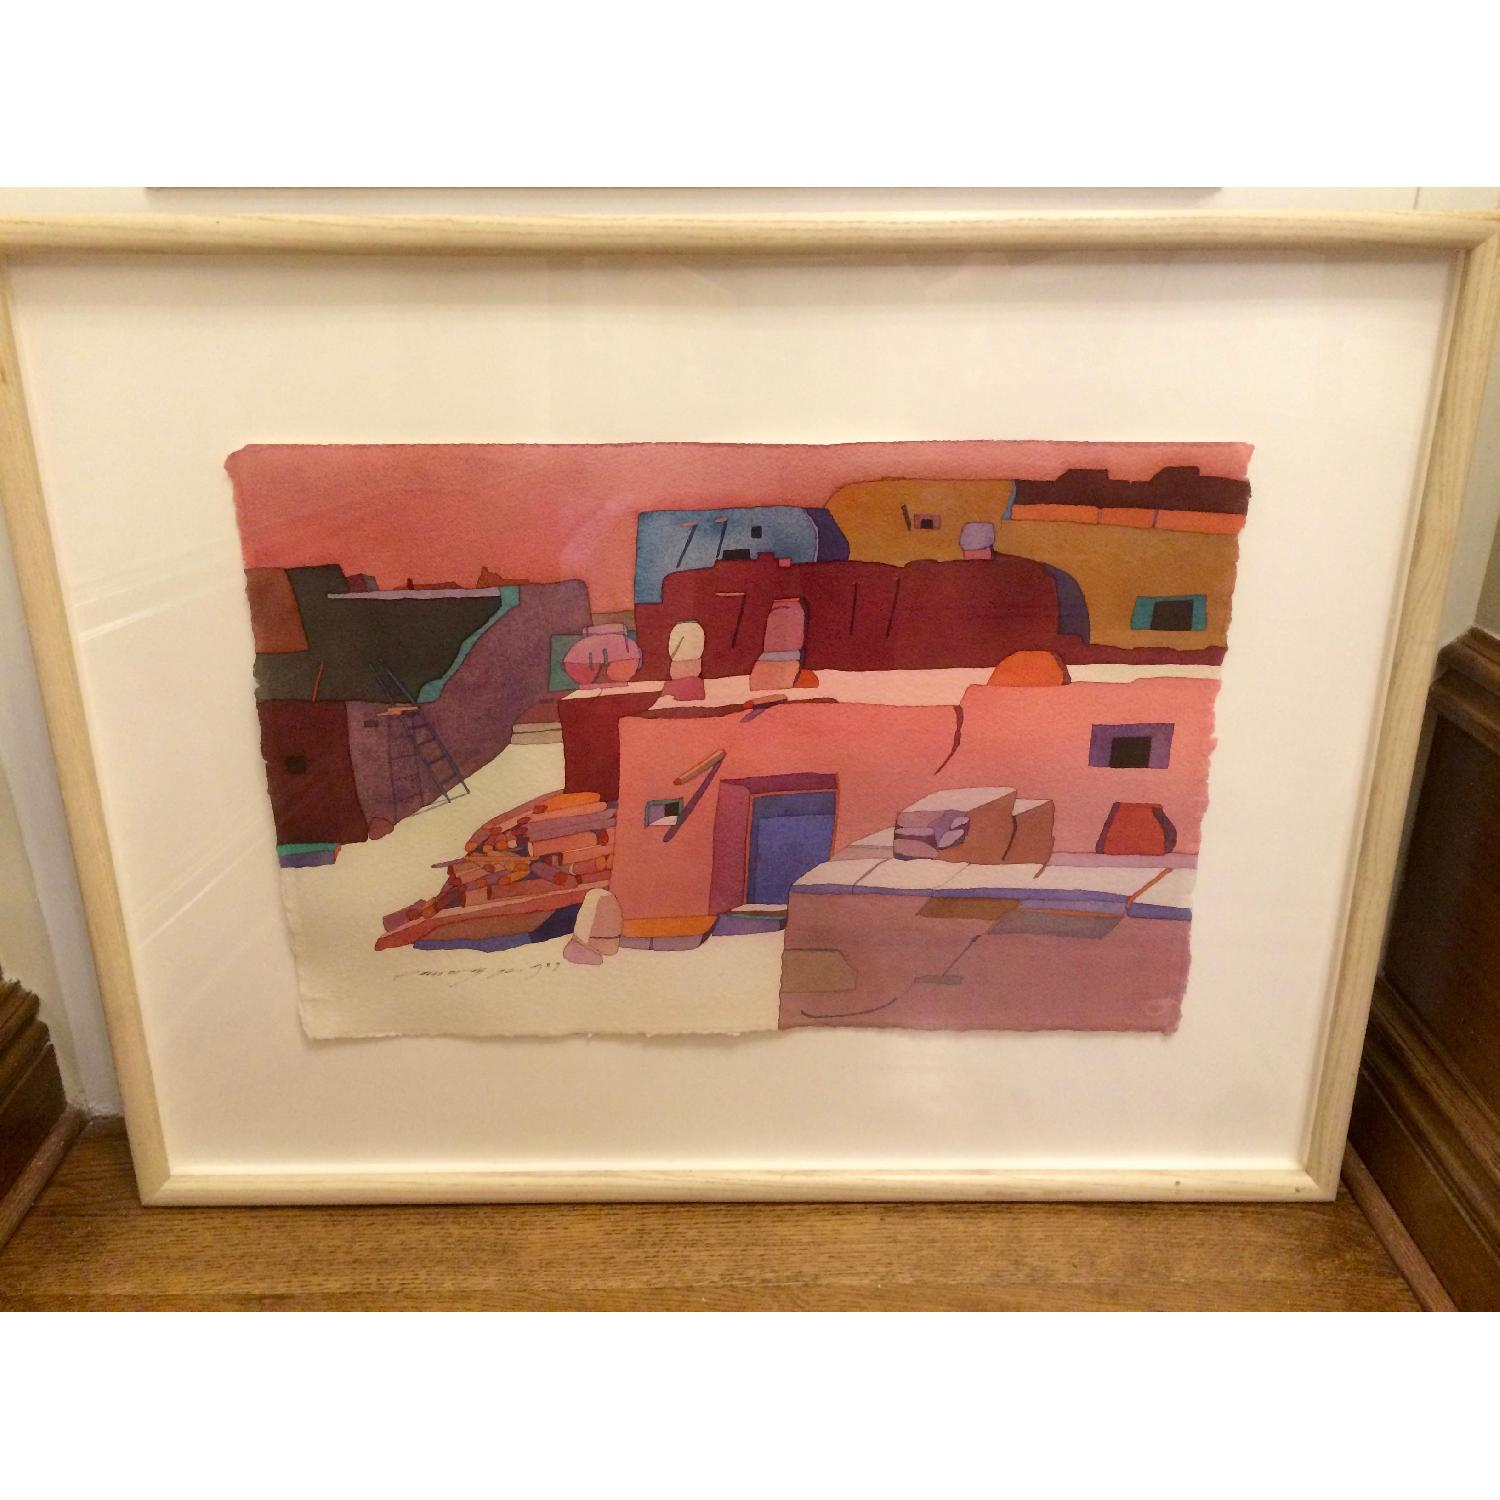 Framed Sari Staggs Watercolor Painting - Village Kiva with Fireplace - image-3